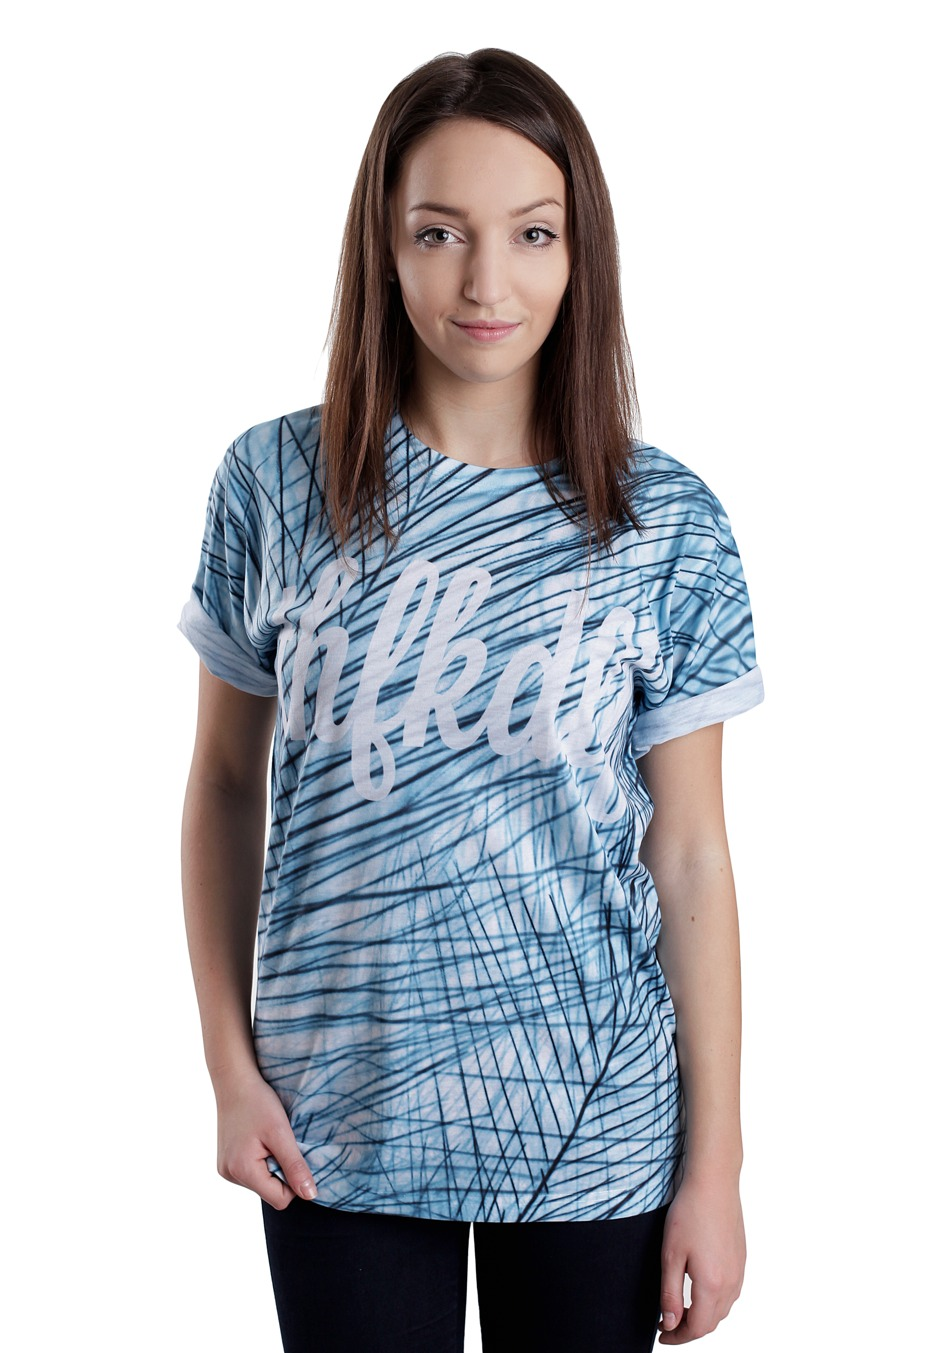 THFKDLF - Blue Pines - T-Shirt - Streetwear Online Shop - Impericon.com Worldwide